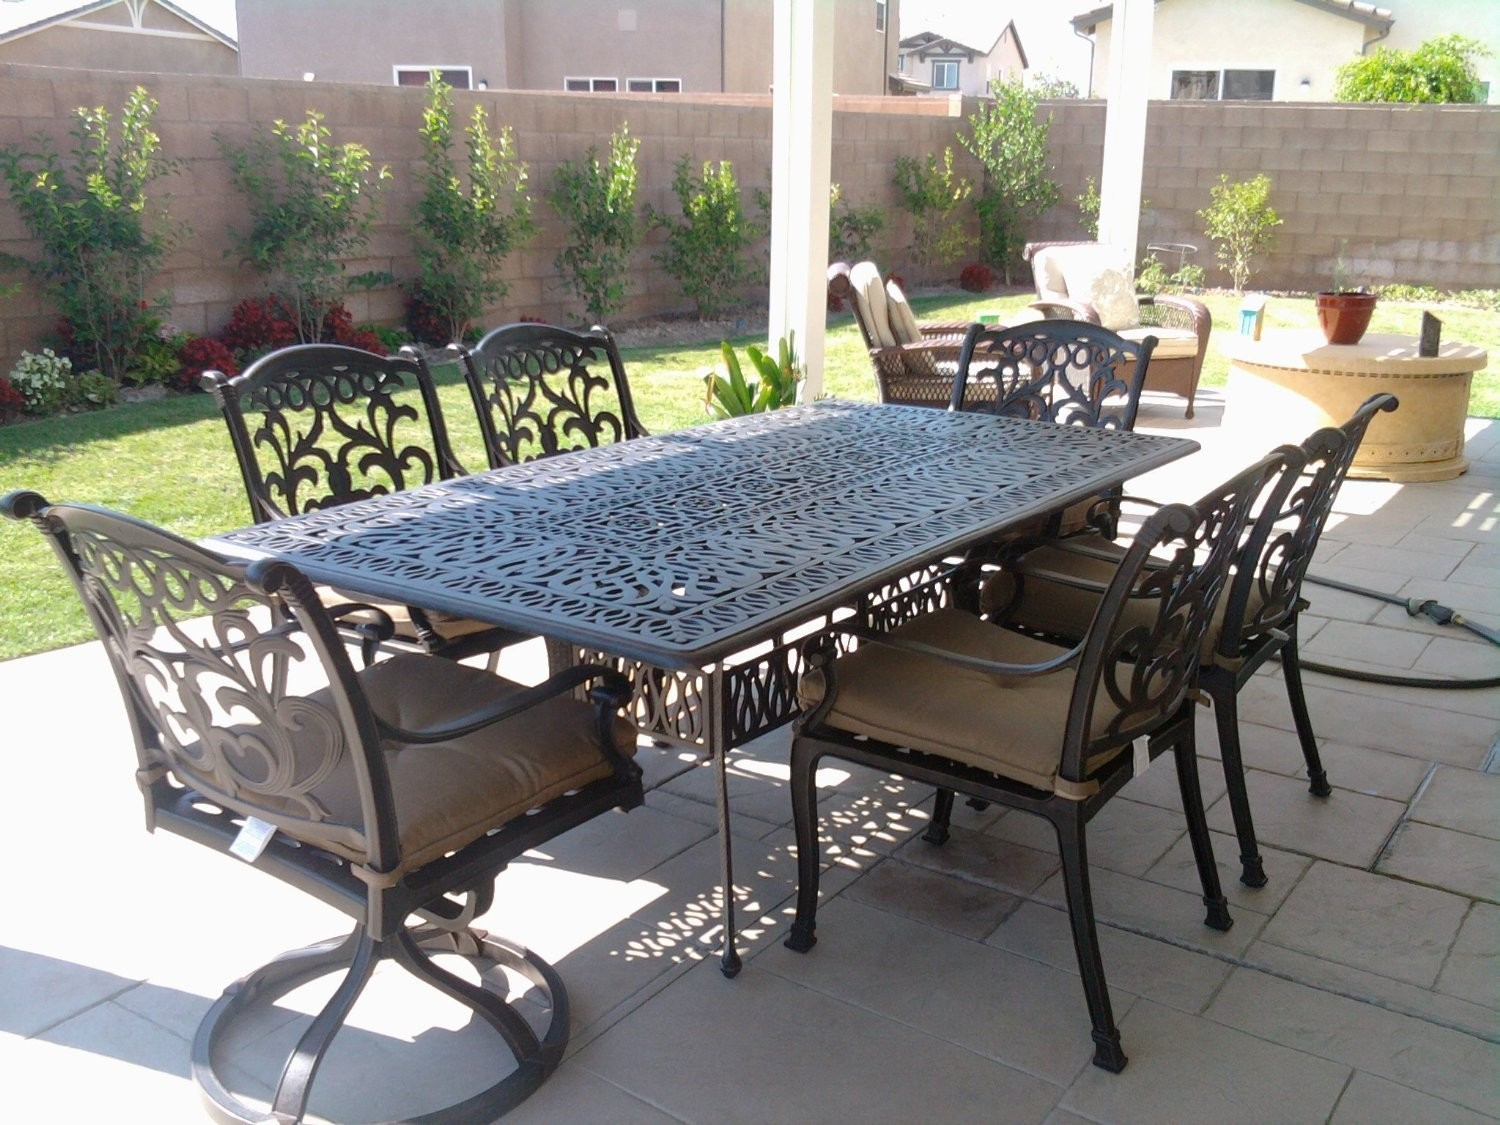 Mandalay cast aluminum powder coated 7pc outdoor patio Outdoor dinner table setting